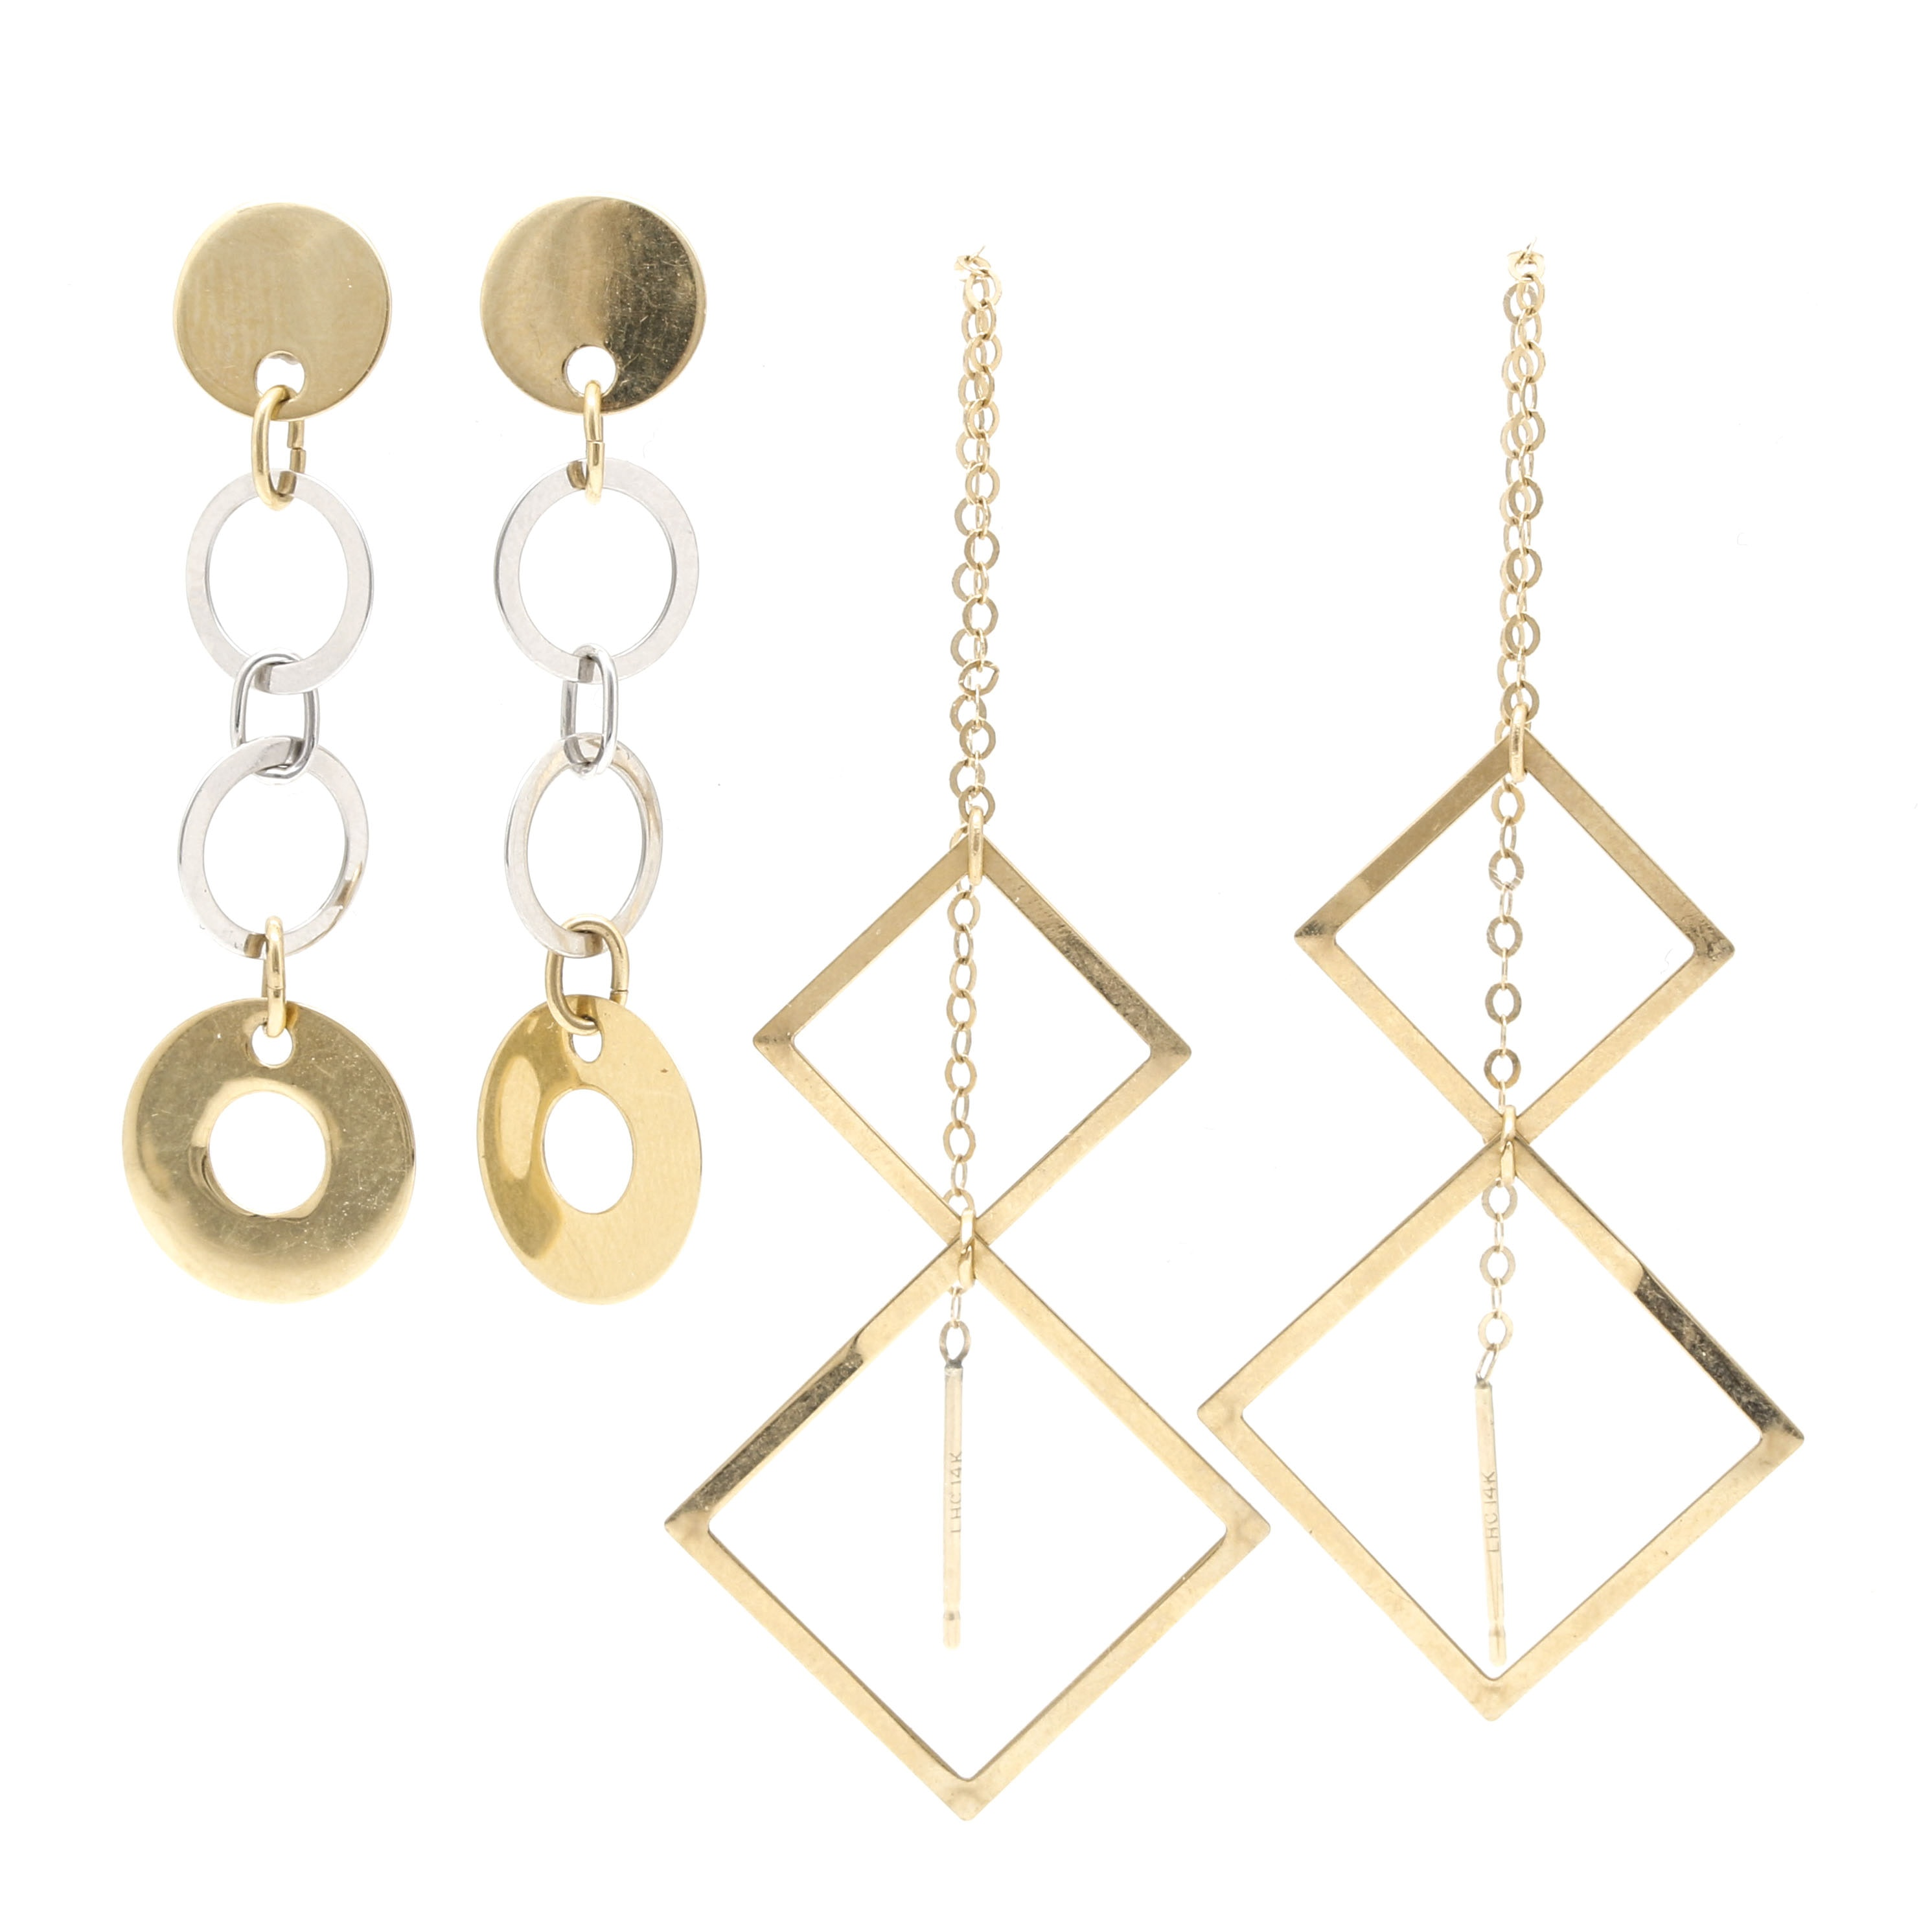 14K Yellow and White Gold Geometric Earrings by Candela and Leon Hall